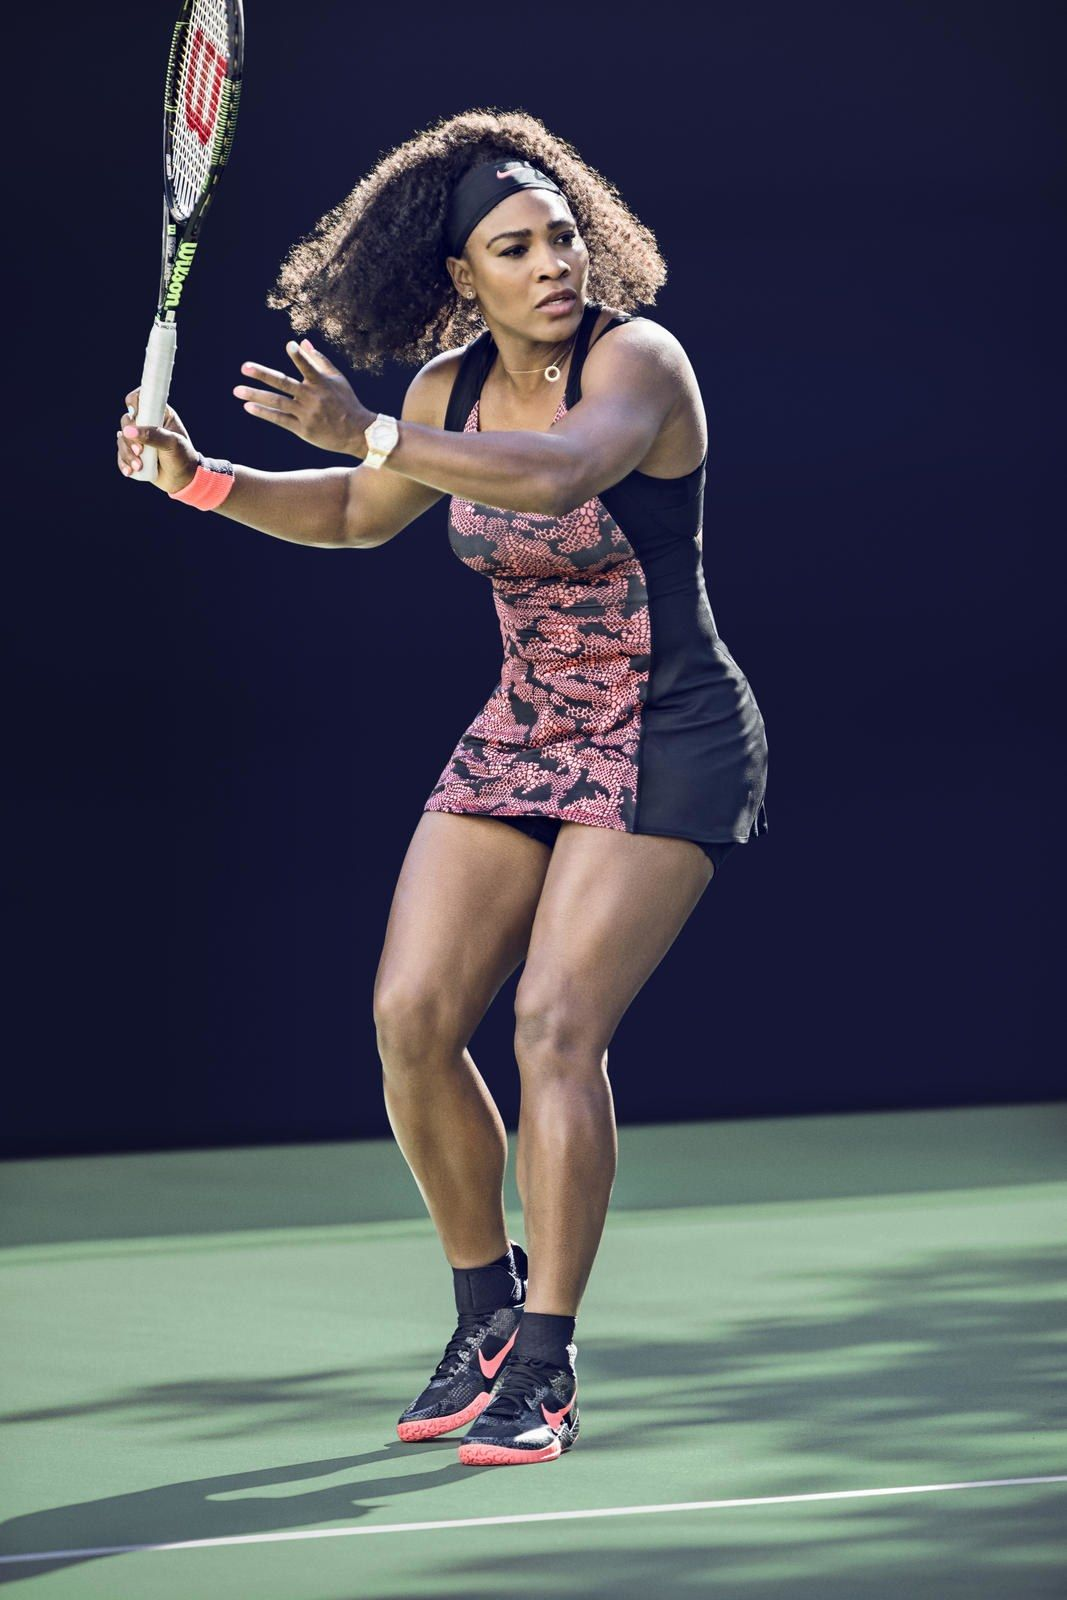 Serena Williams's New Collection With Nike: Greatness - Vogue